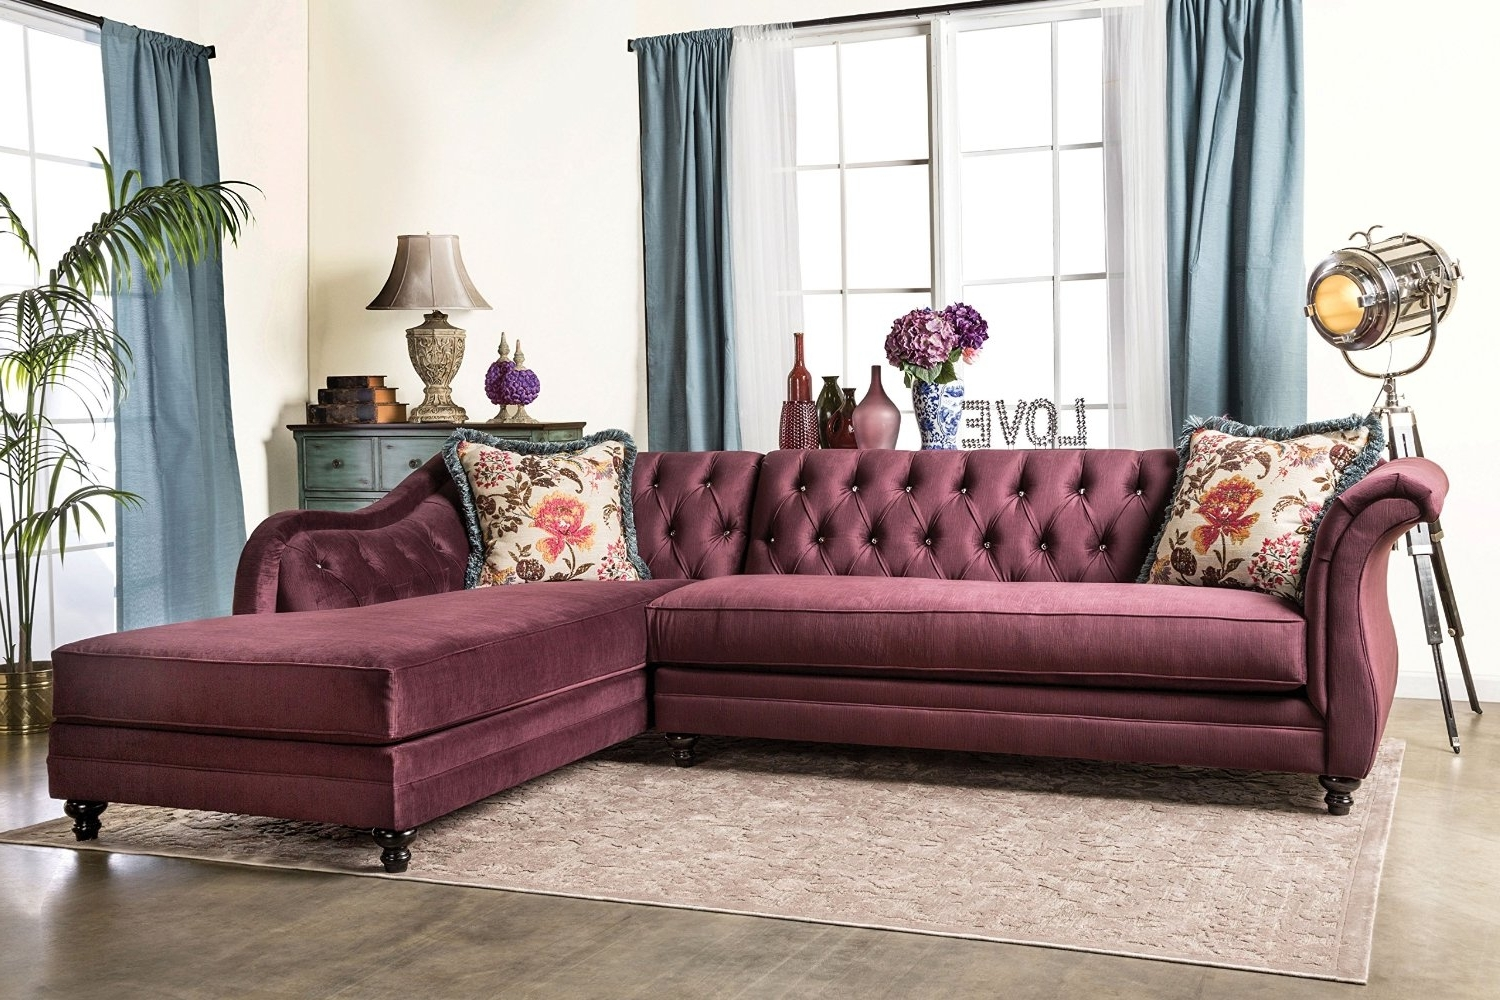 Chesterfield Sofas For Most Current 25 Best Chesterfield Sofas To Buy In (View 12 of 20)